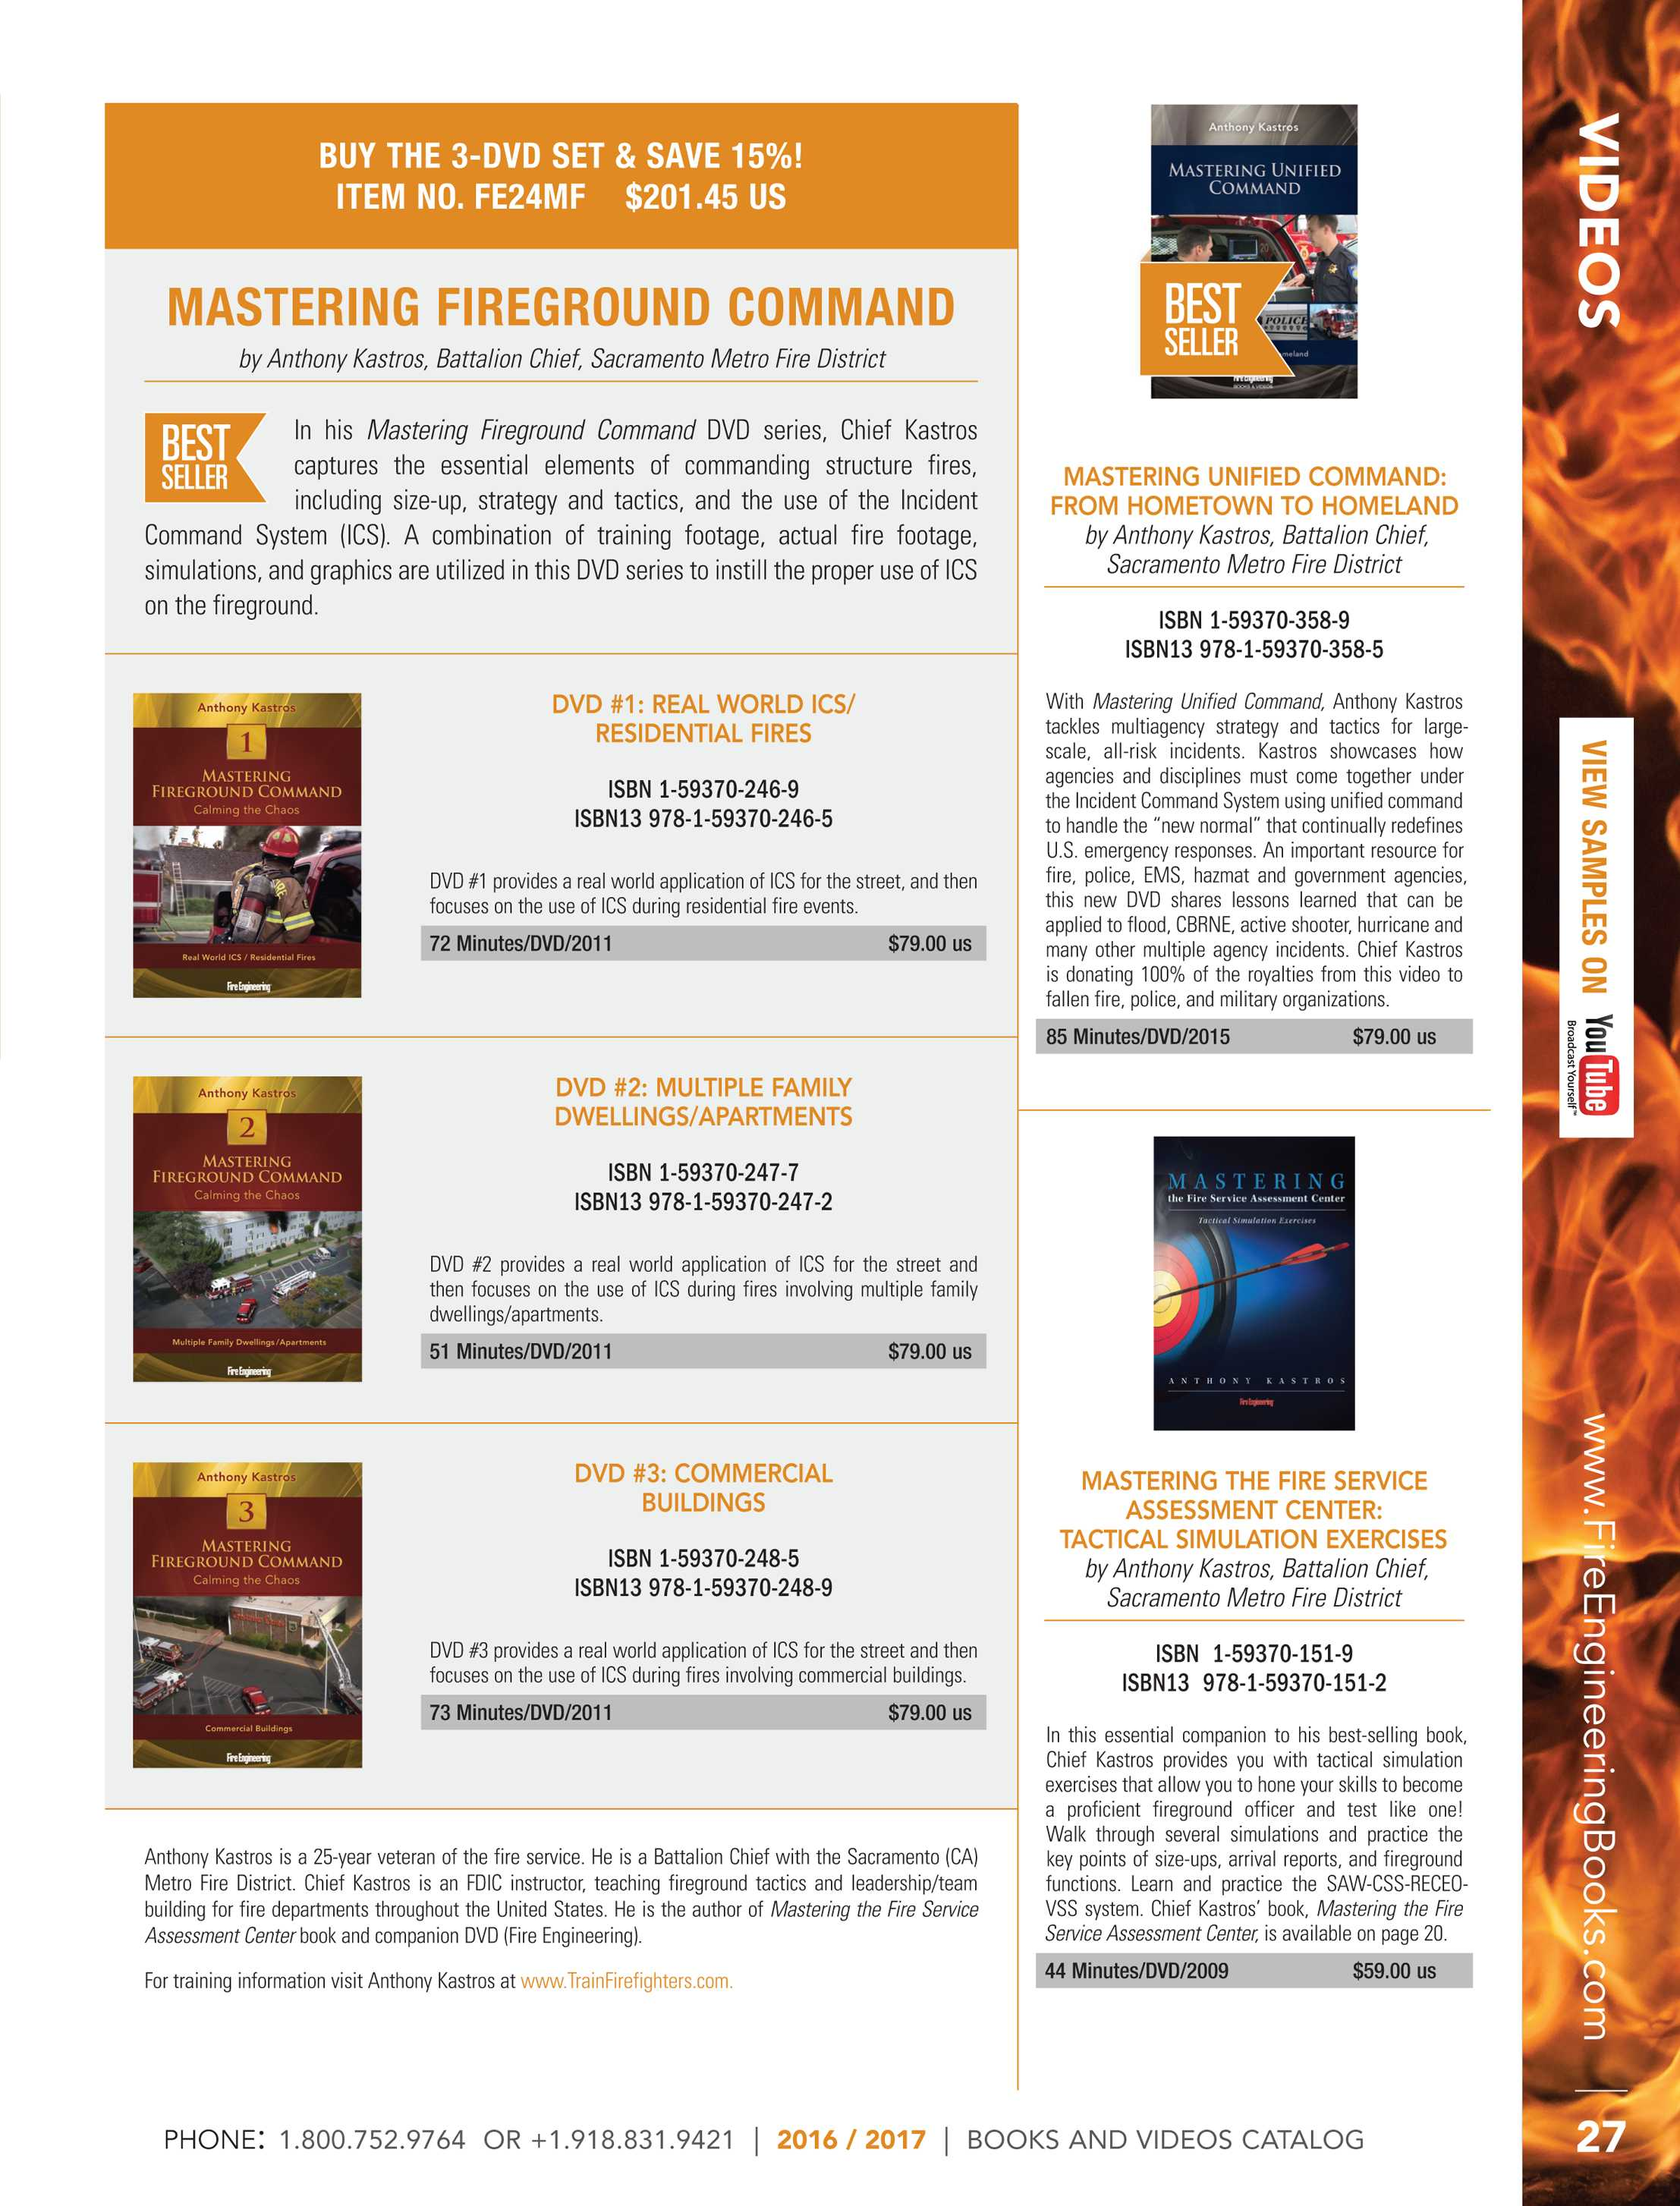 Pennwell Supplements - Spring 2016 Fire Catalog - page 27